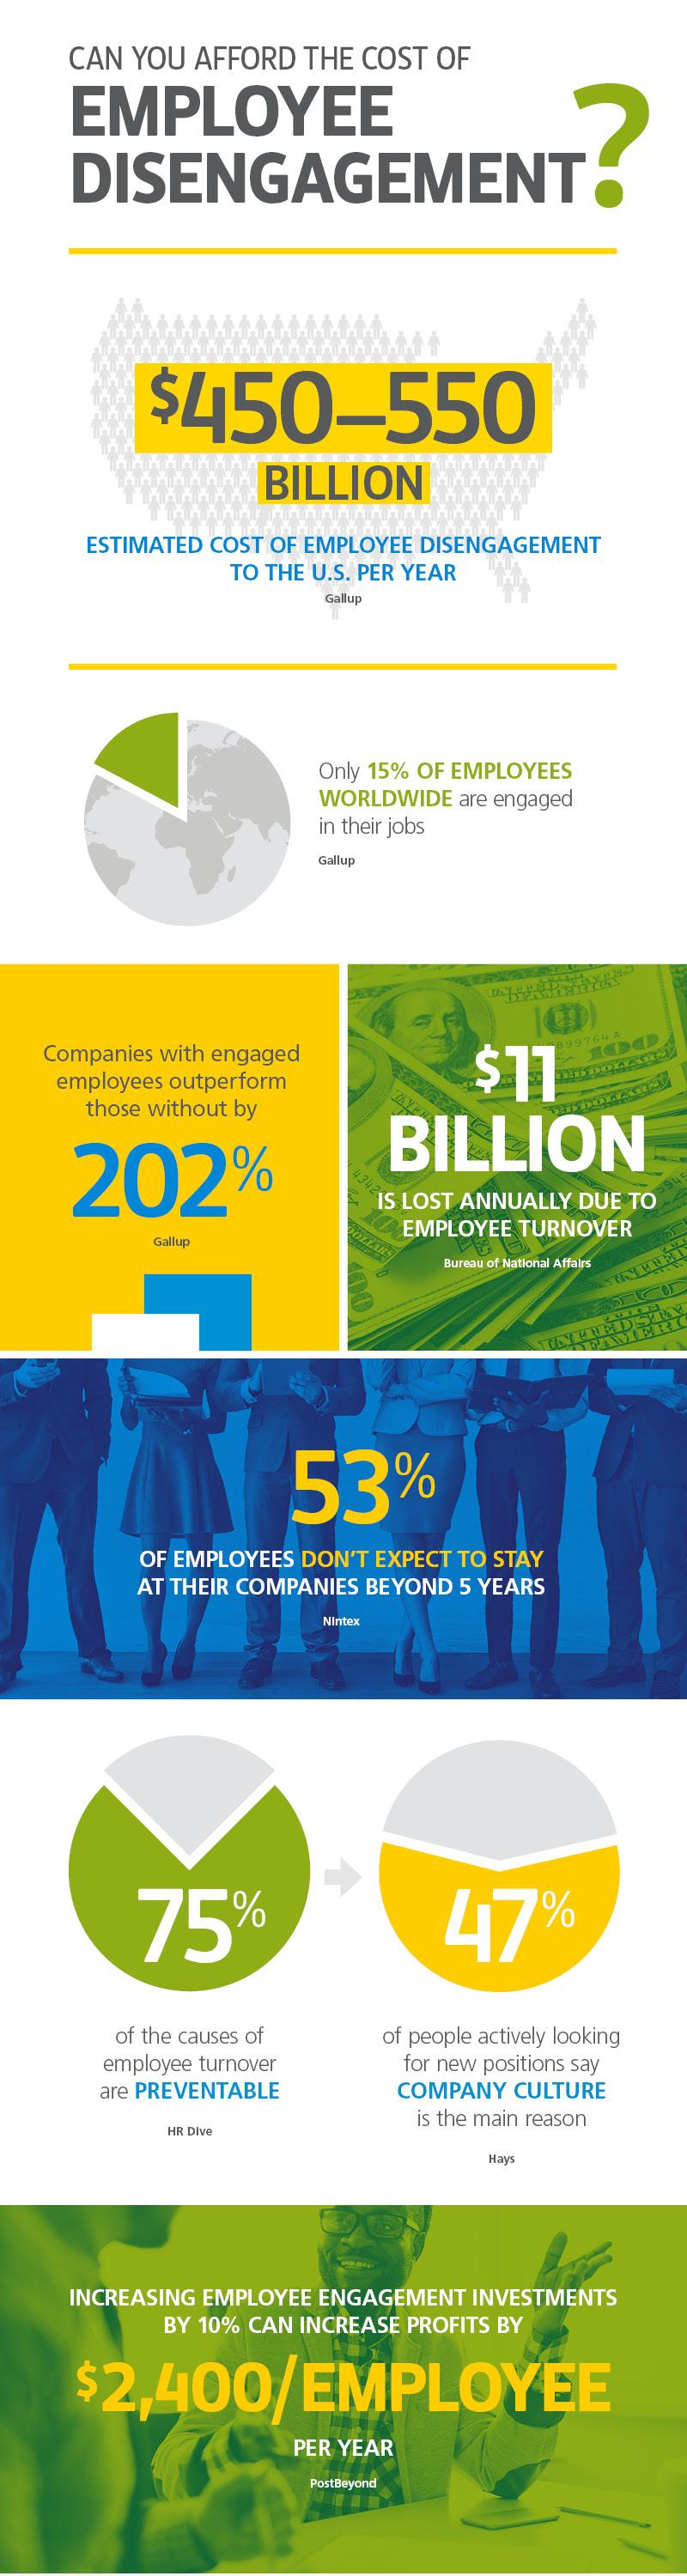 Can You Afford the Cost of Employee Disengagement? Infographic